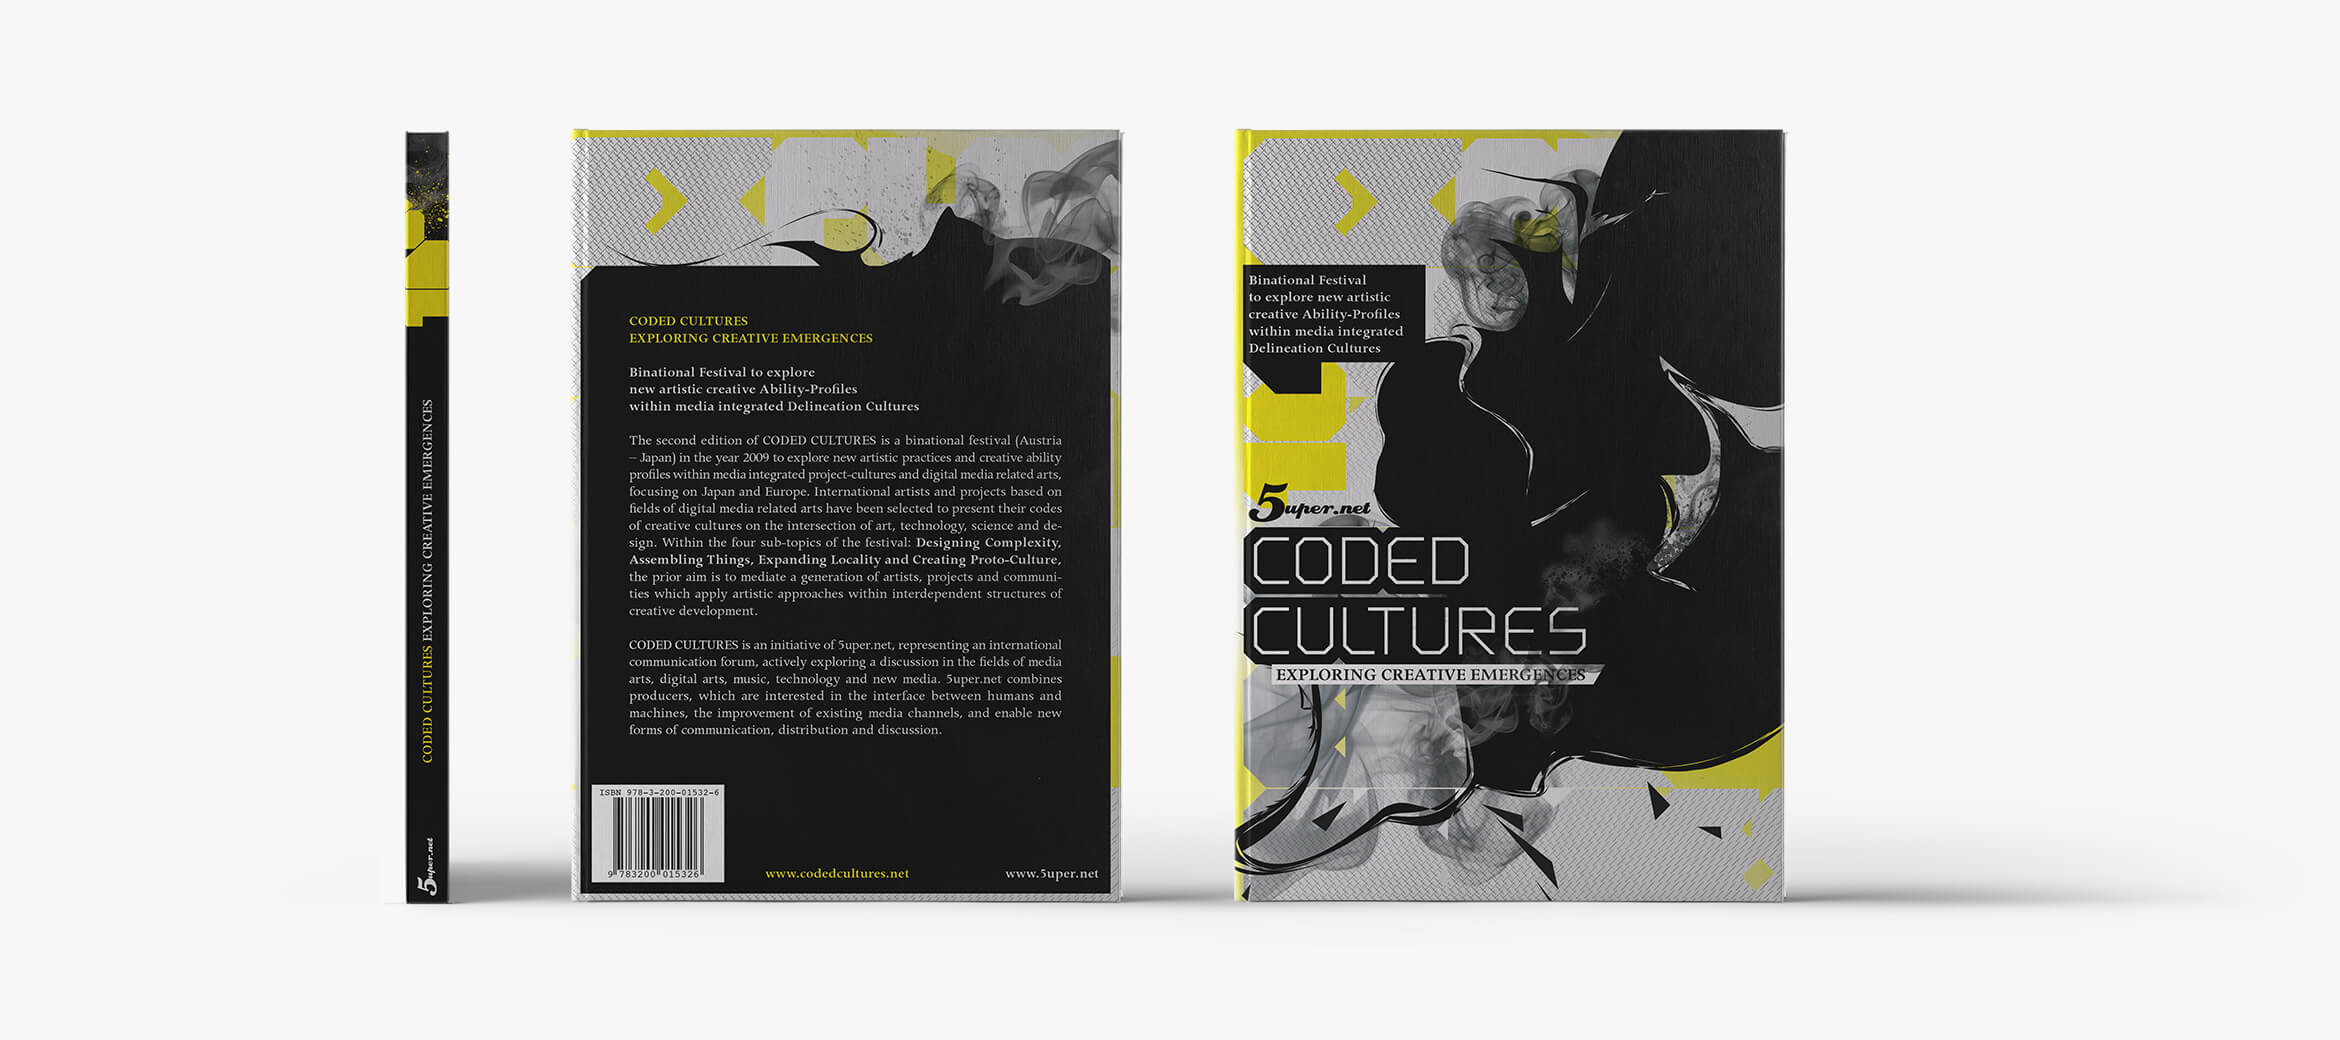 img_coded_cultures_5